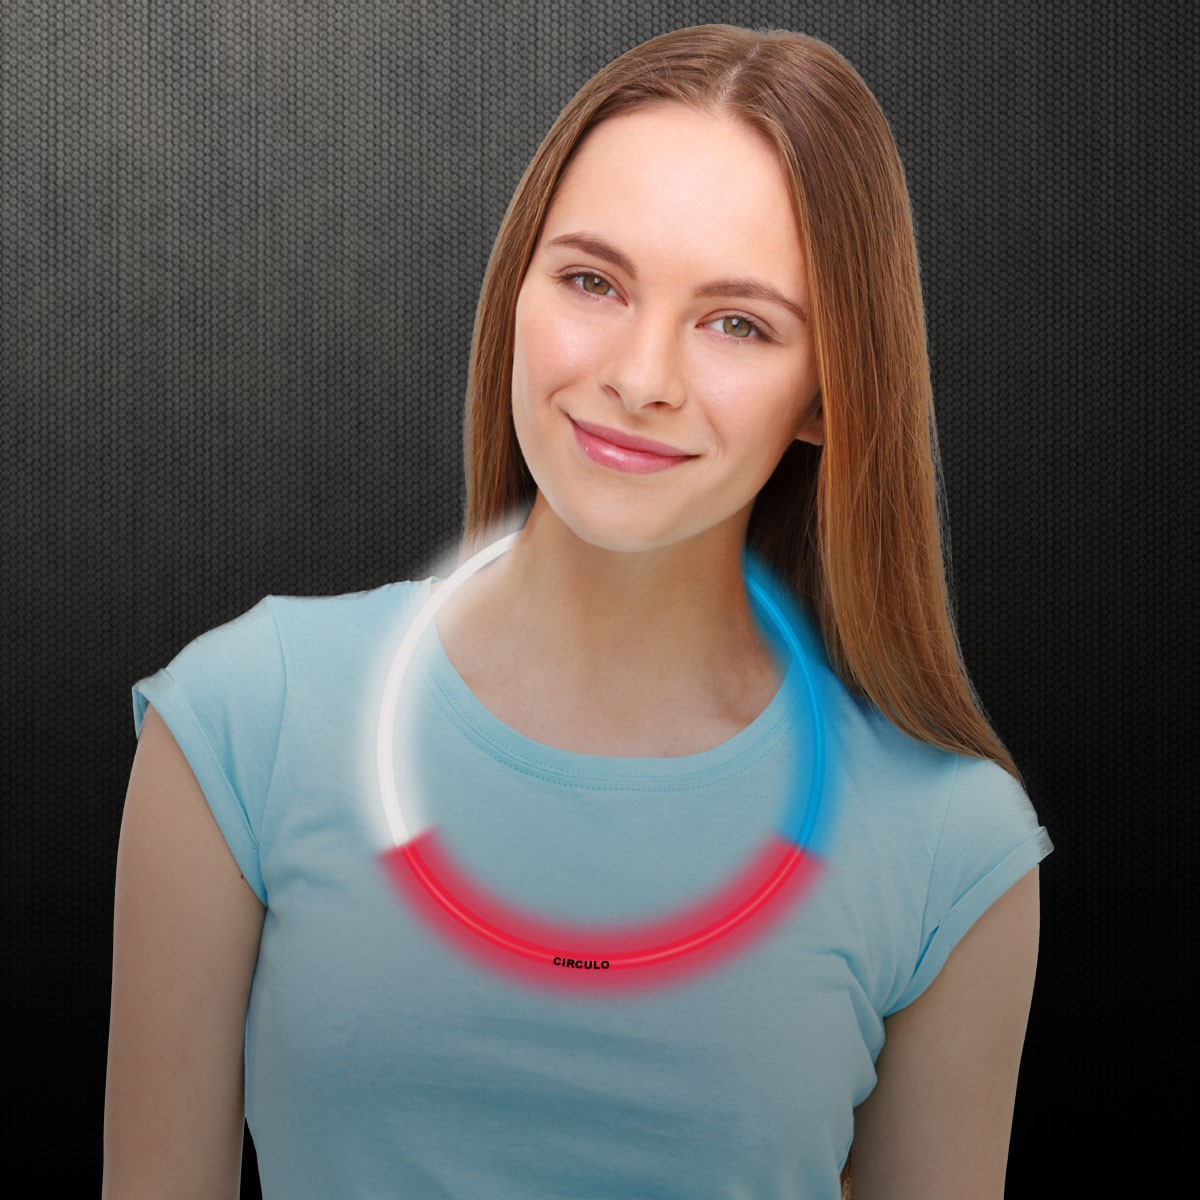 22 INCH REDWHTBLUE GLOW NECKLACE